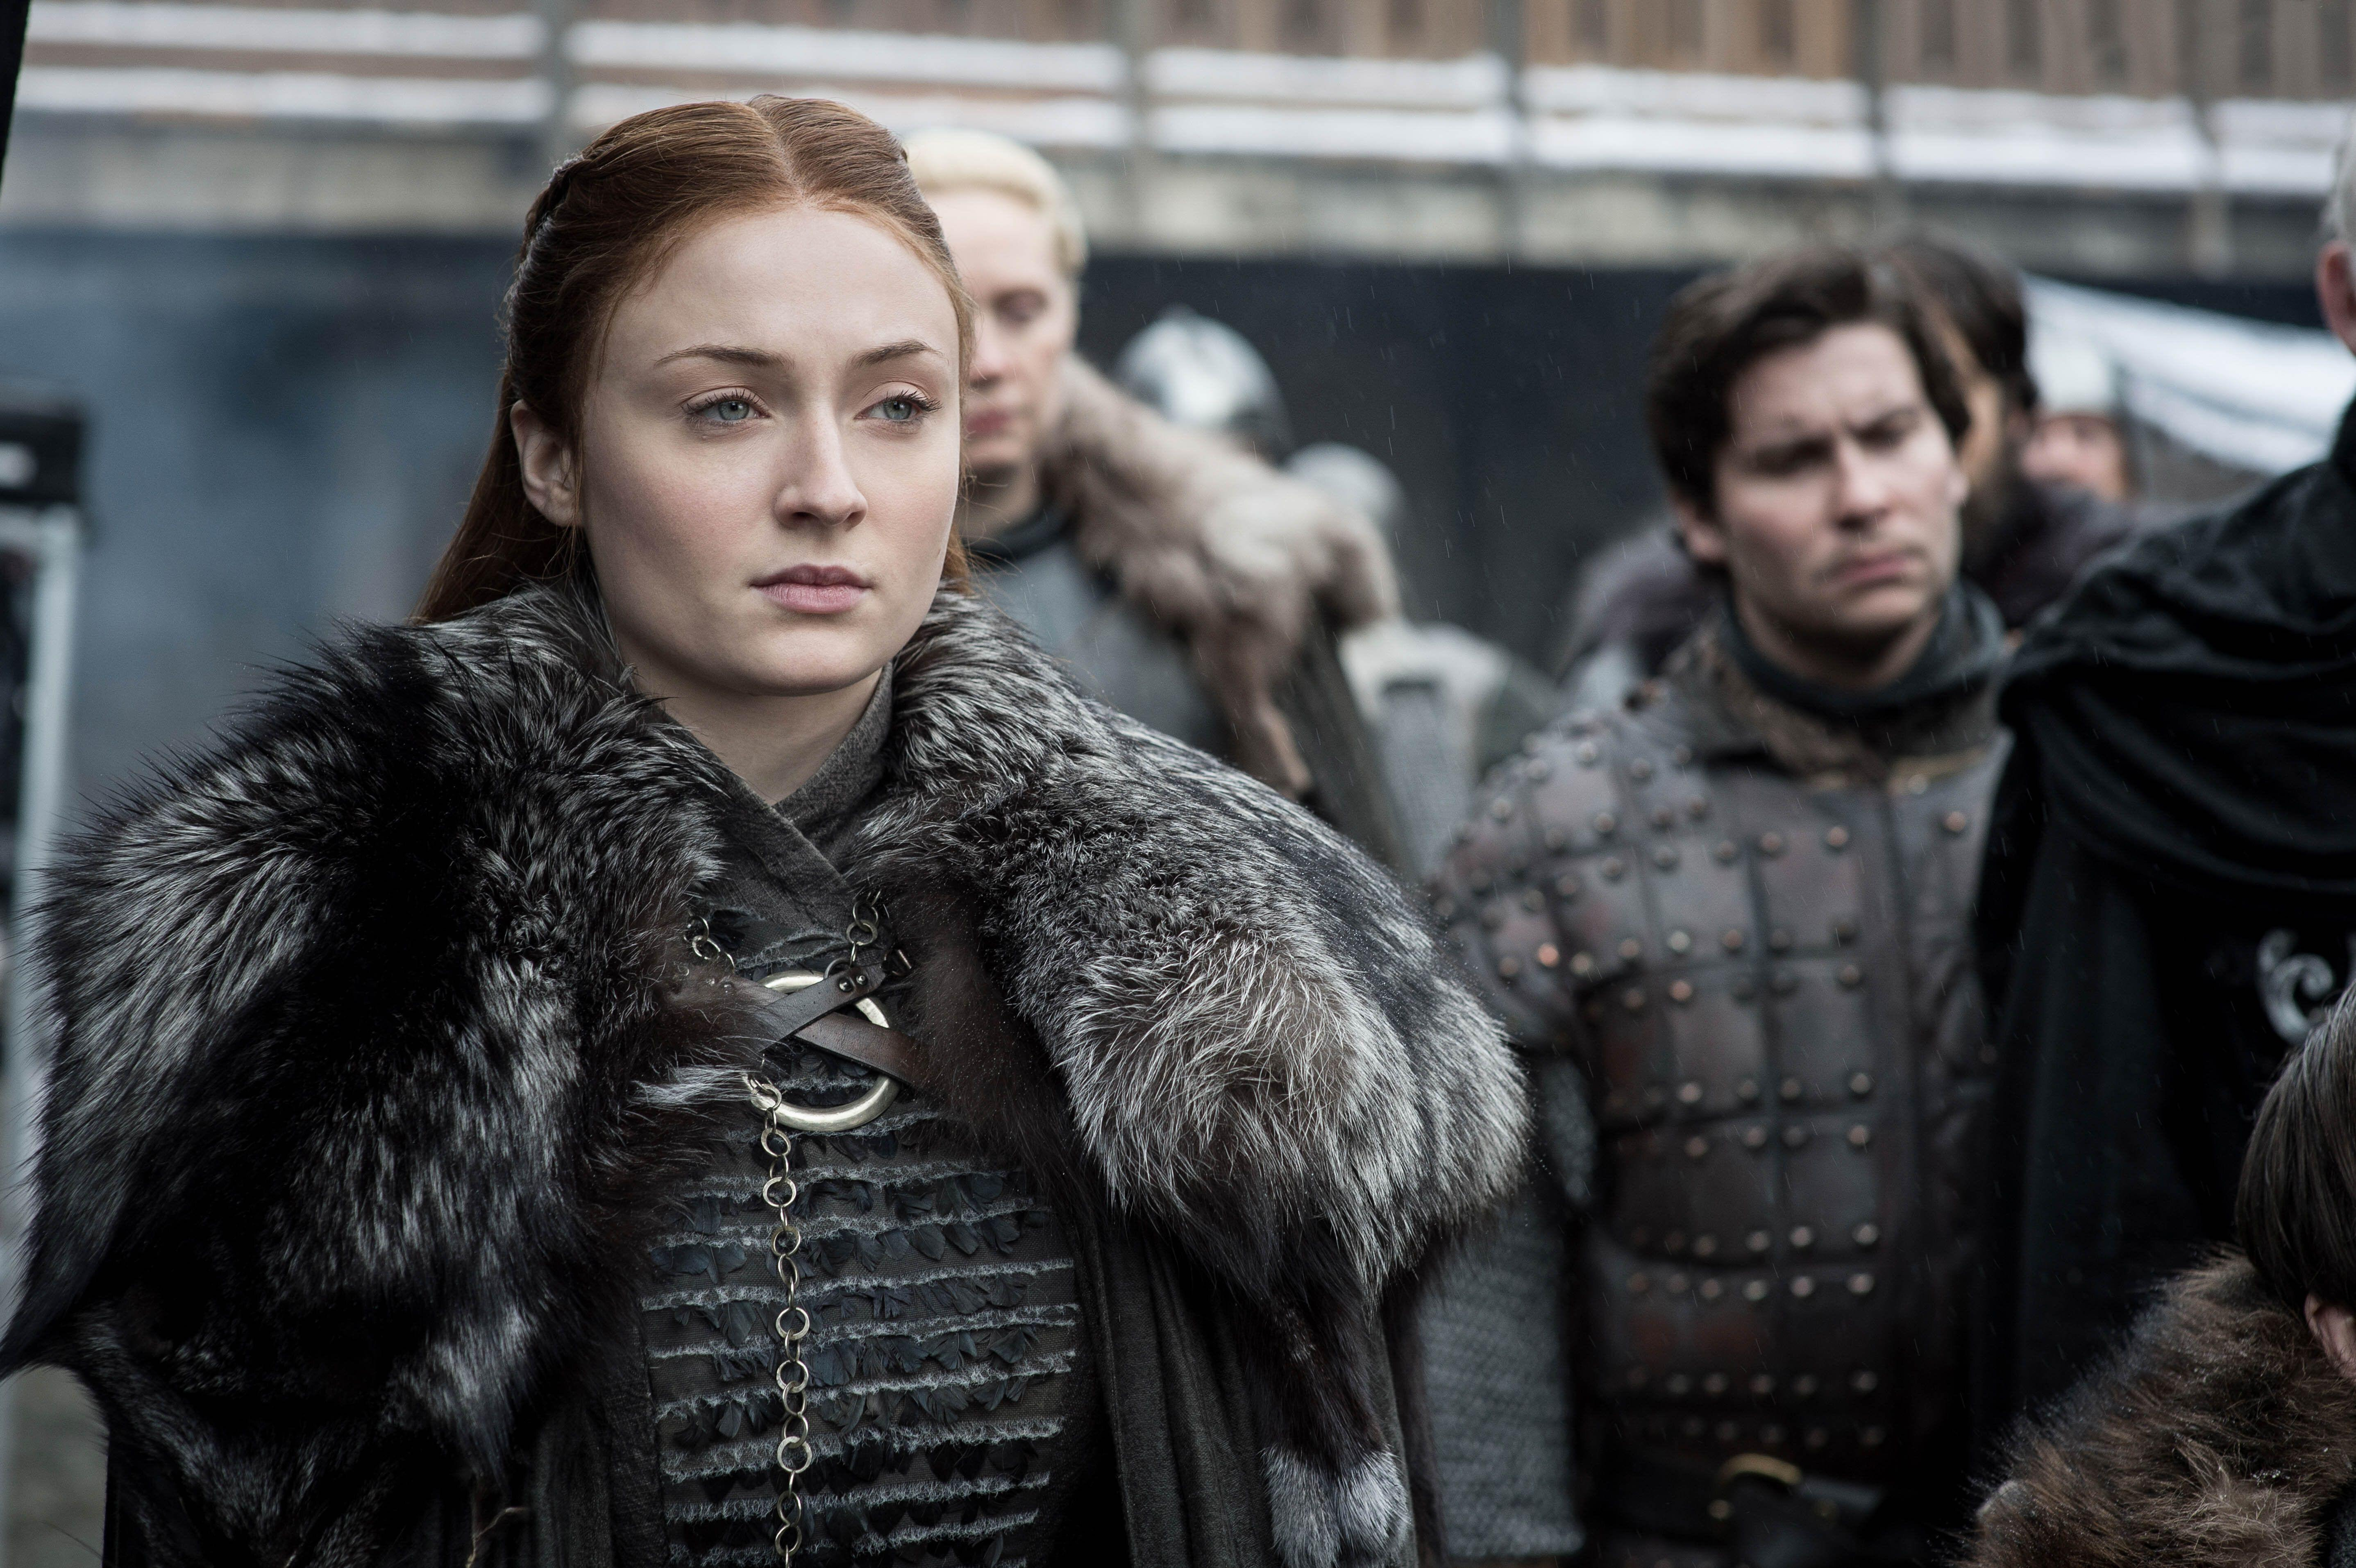 HBO to air 'The Last Watch', a two-hour special 'Game of Thrones' documentary